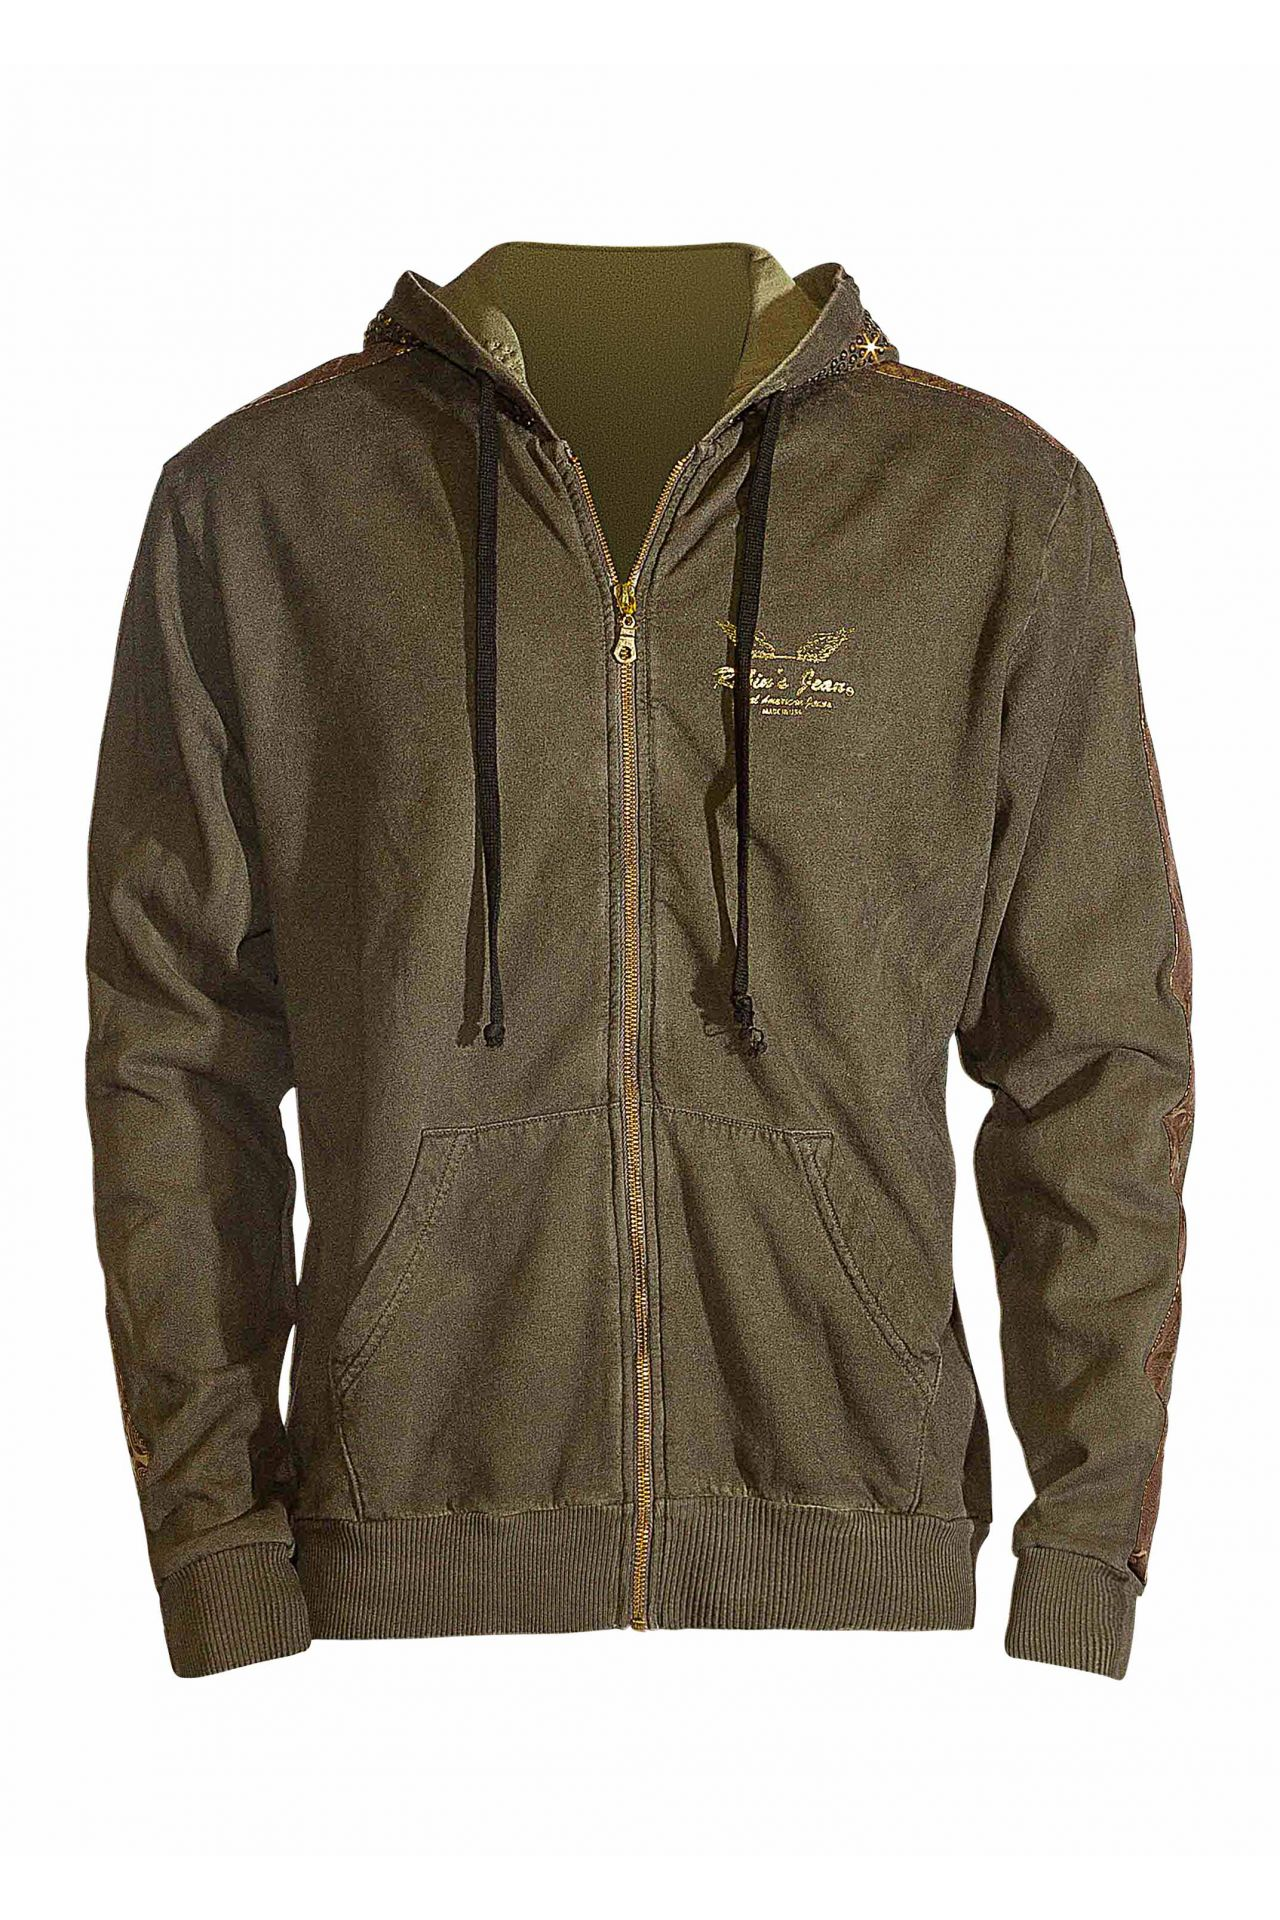 ARMY GREEN HOODIE WITH STRIPES AND SW